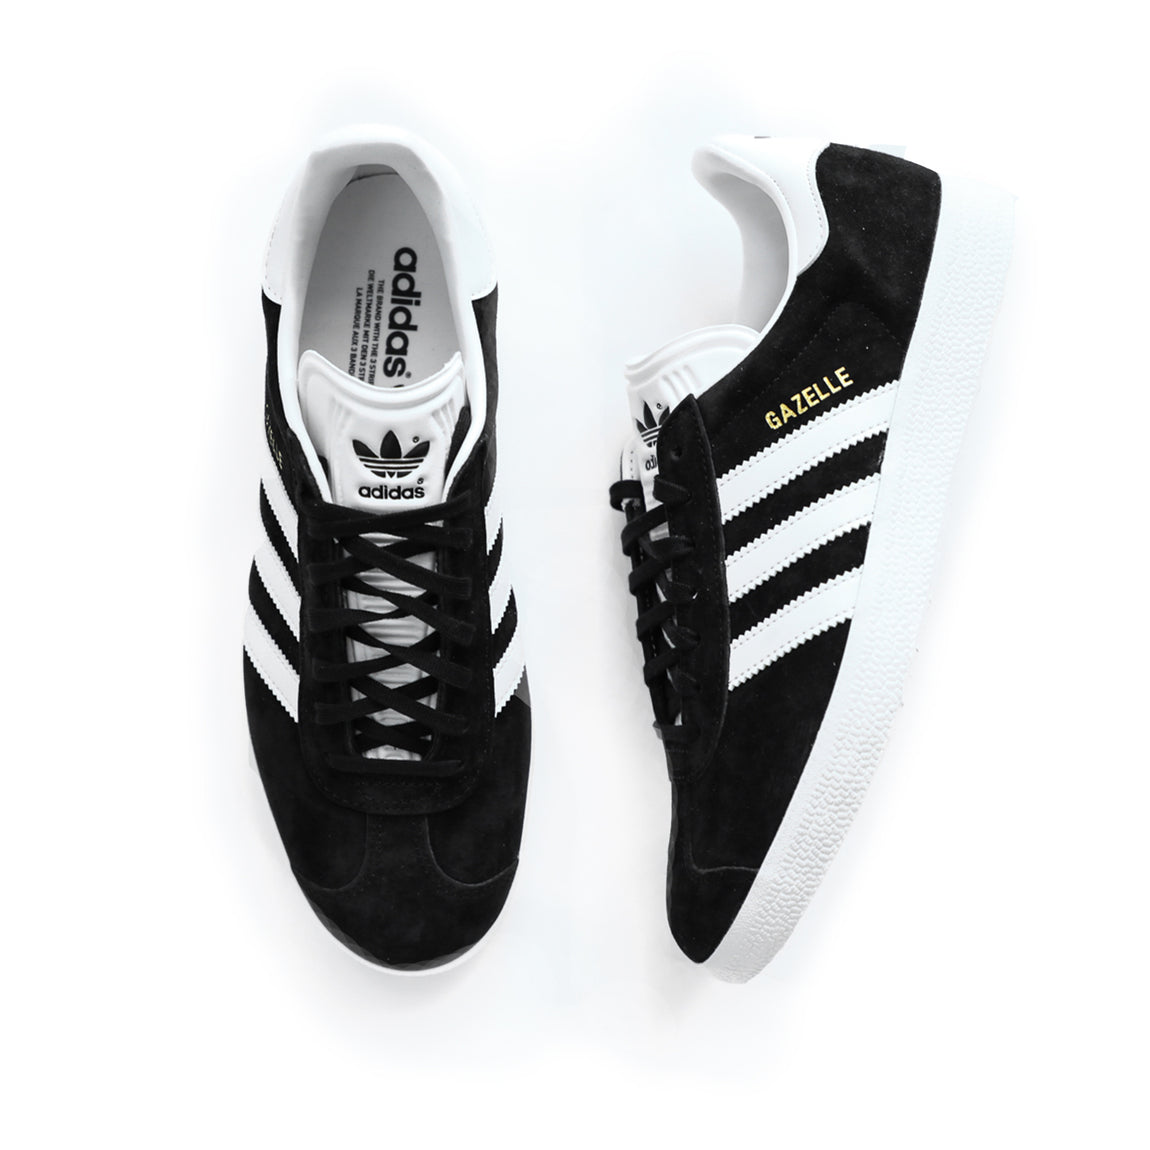 Adidas Gazelle (Core Black/White/Gold Metallic) - Adidas Gazelle (Core Black/White/Gold Metallic) -